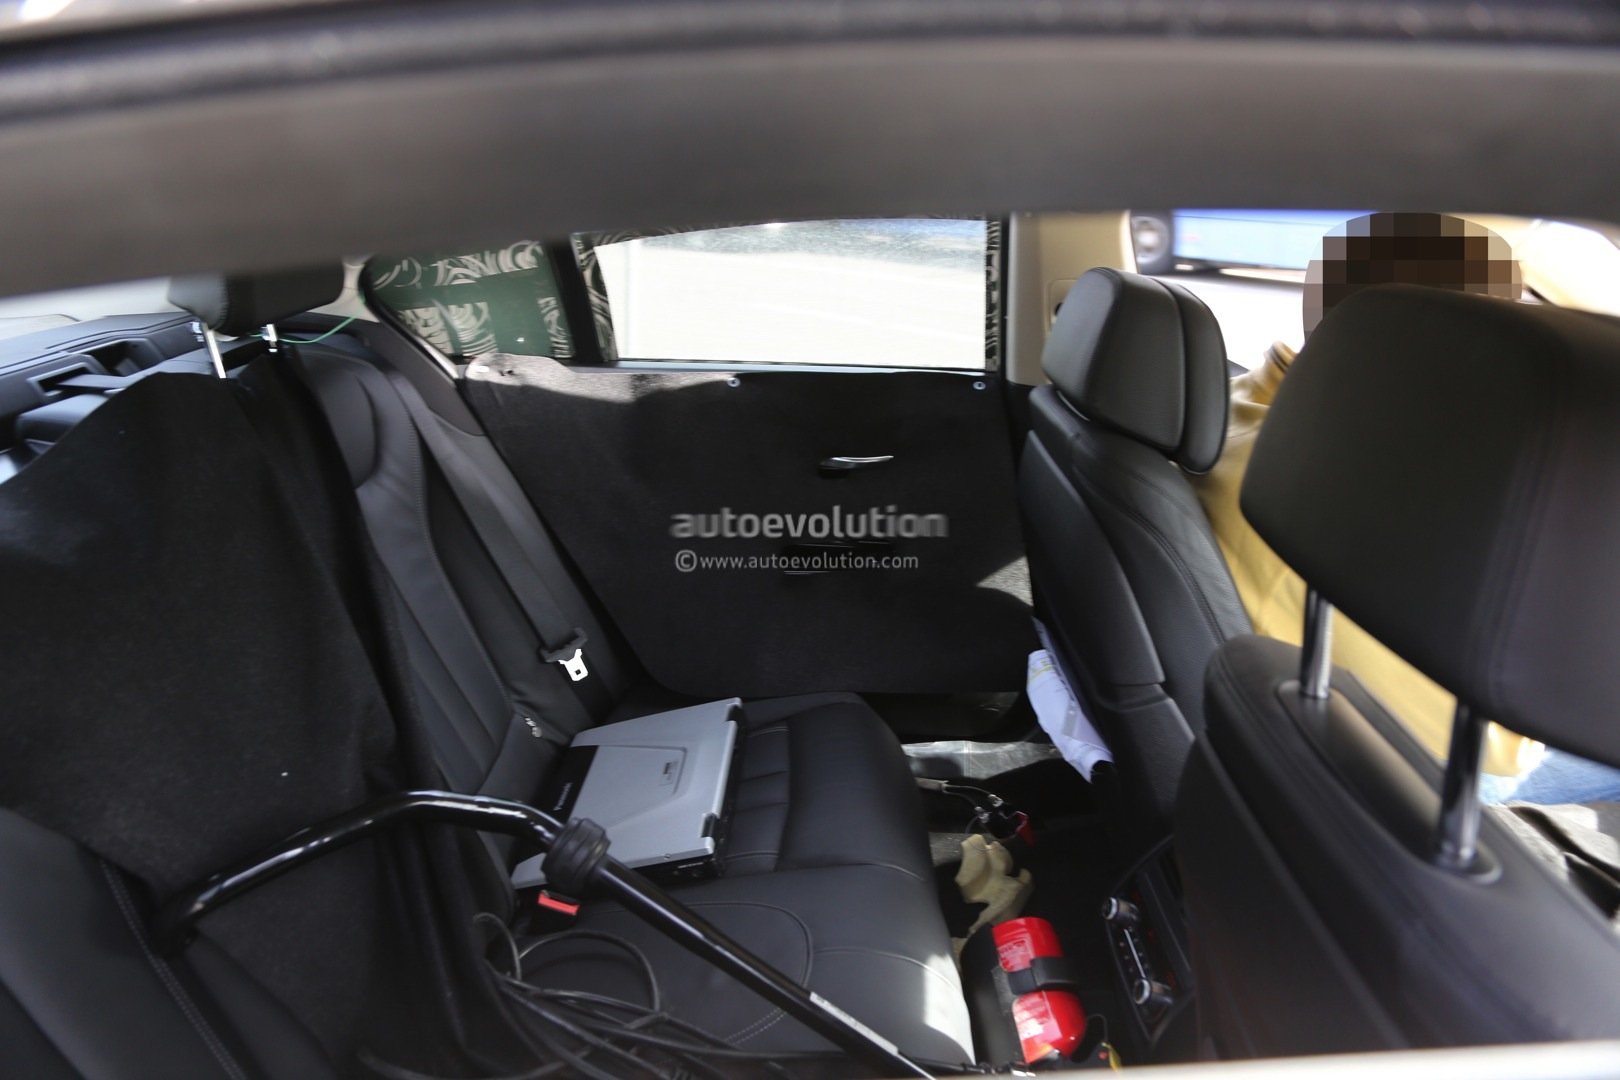 2016 BMW 7 Series Interior Spied For The First Time